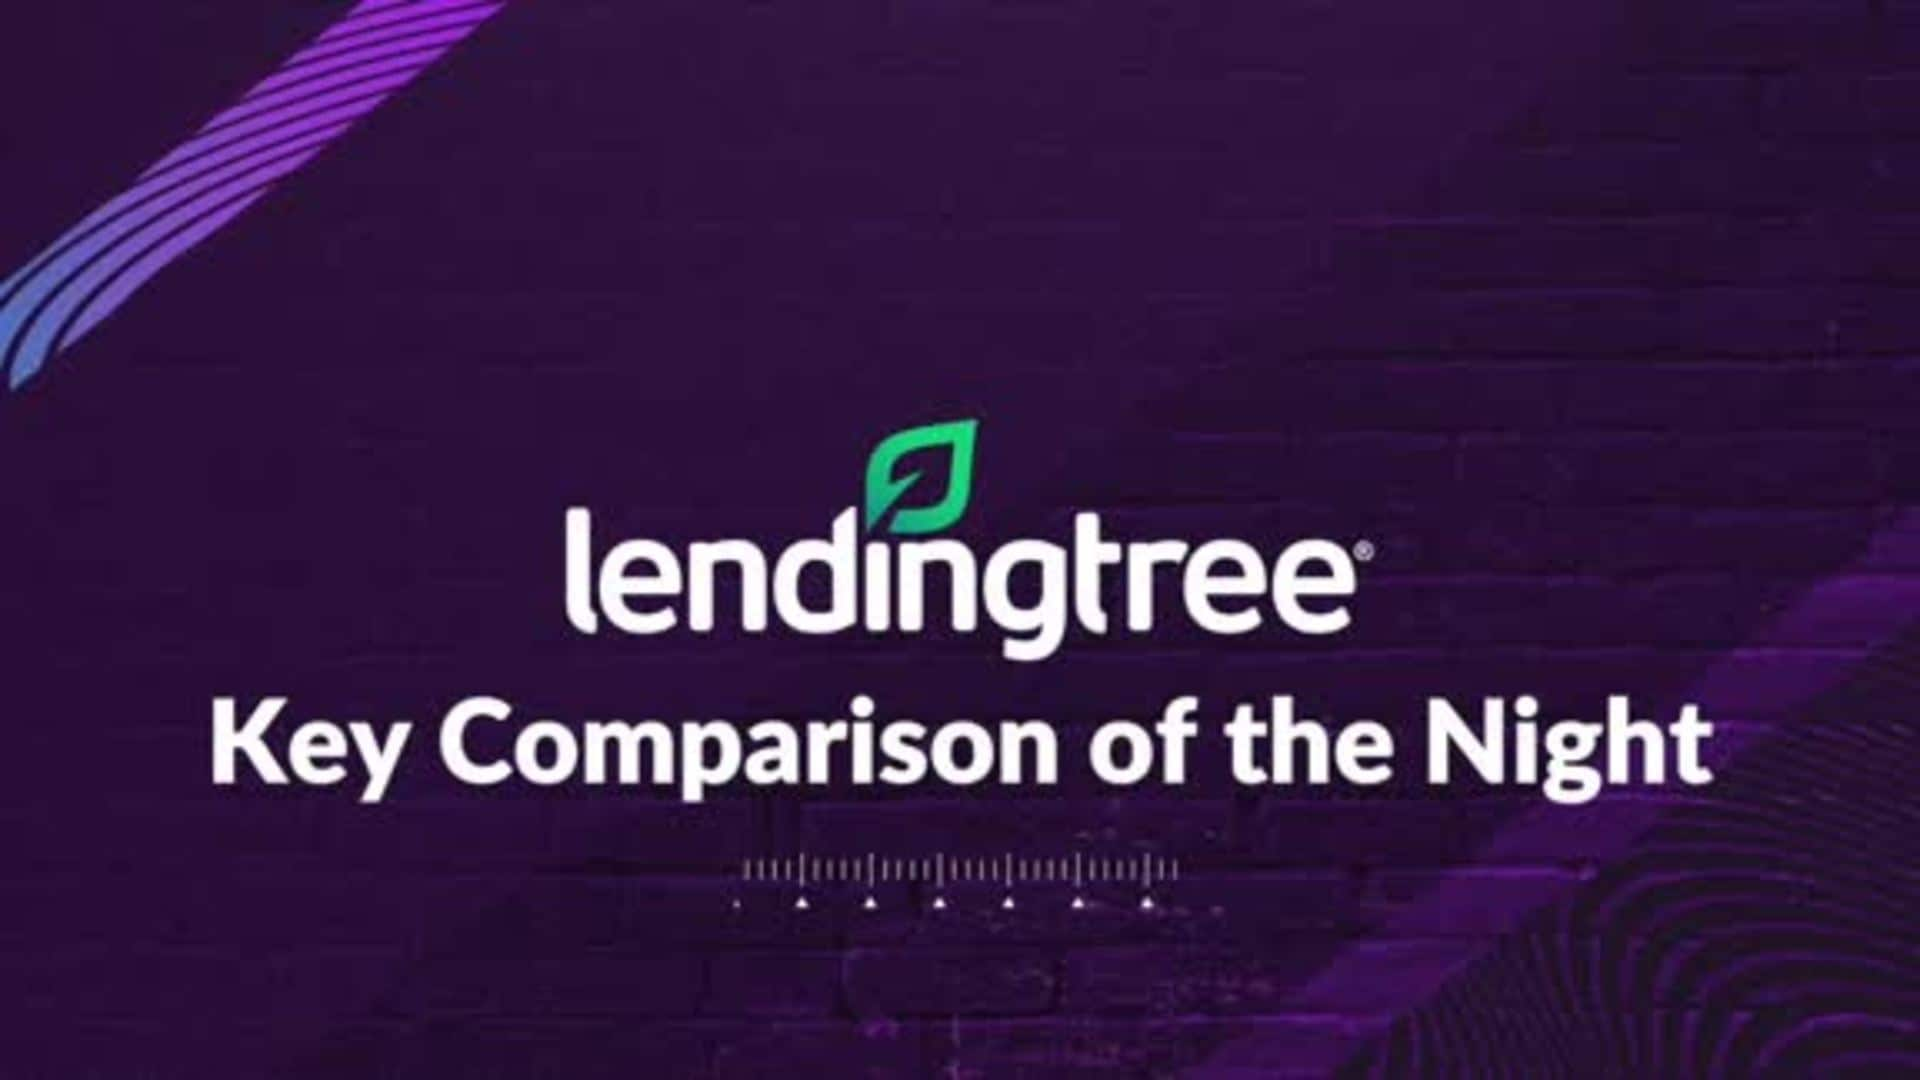 LendingTree's Key Comparison of the Night - 11/13/19